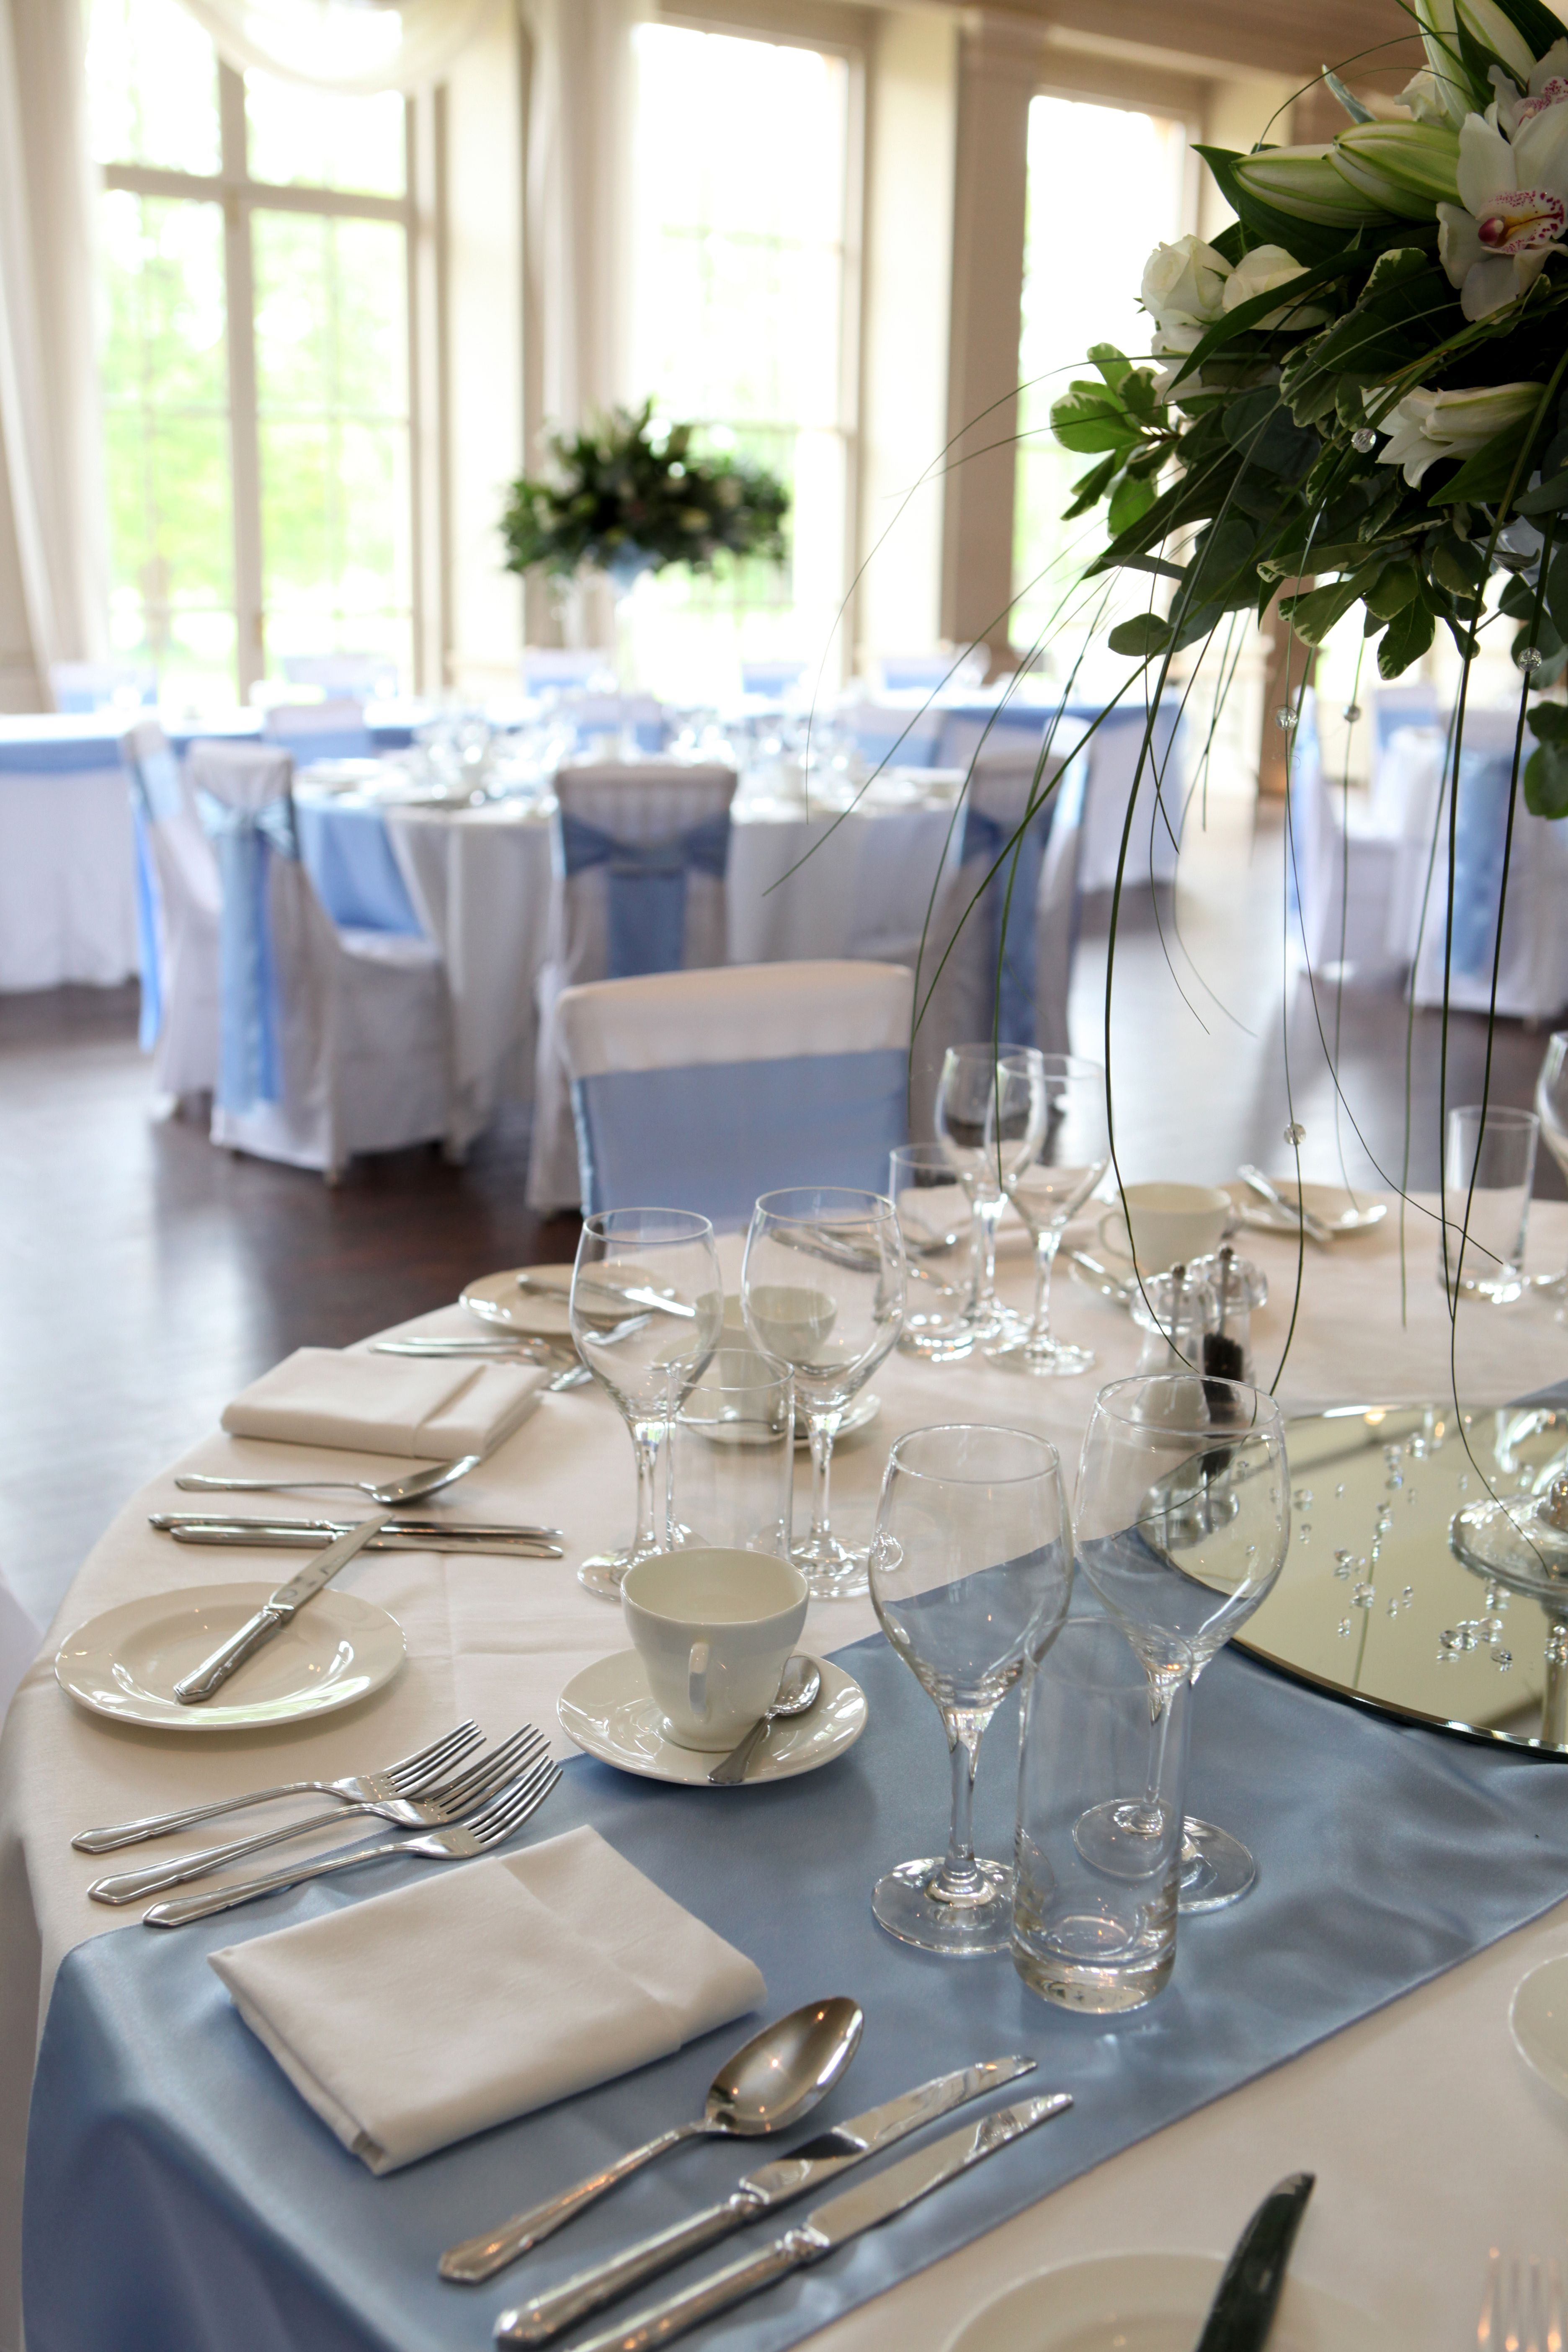 Sky Blue Table Runner And Sashes Stubton Hall Www Modernheritagestyling Co Uk